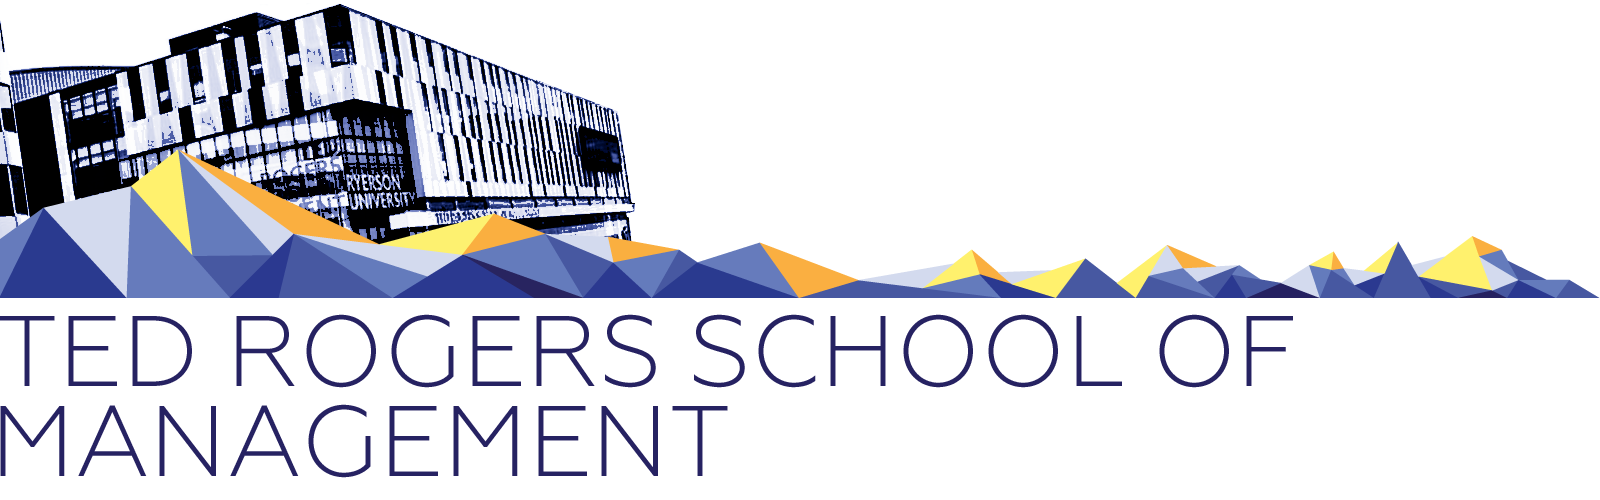 Ted Rogers School of Management Banner